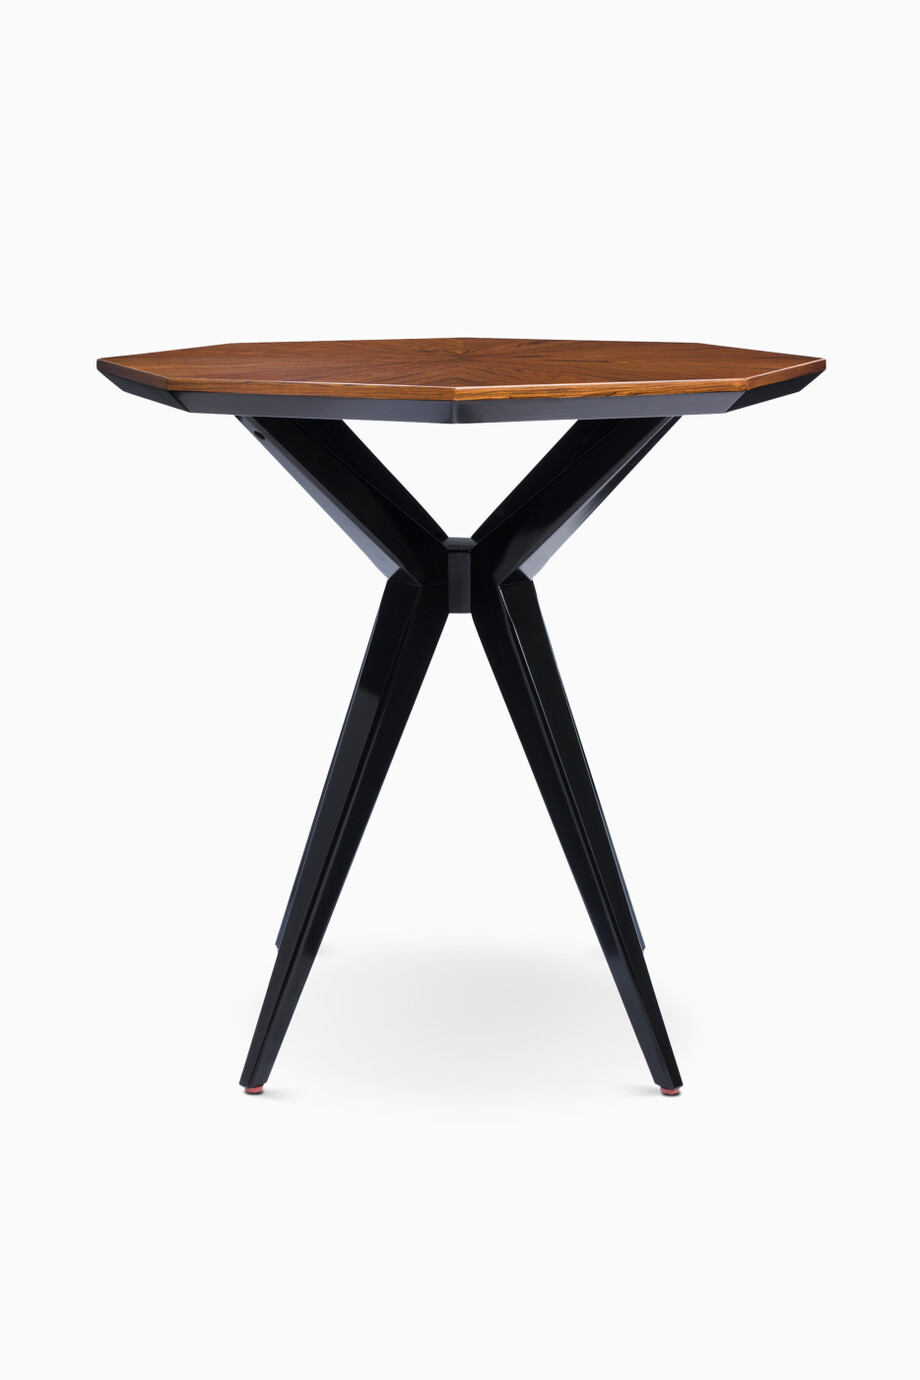 Shop Kate Spade New York Brown Rosewood & Onyx Starburst Side Table